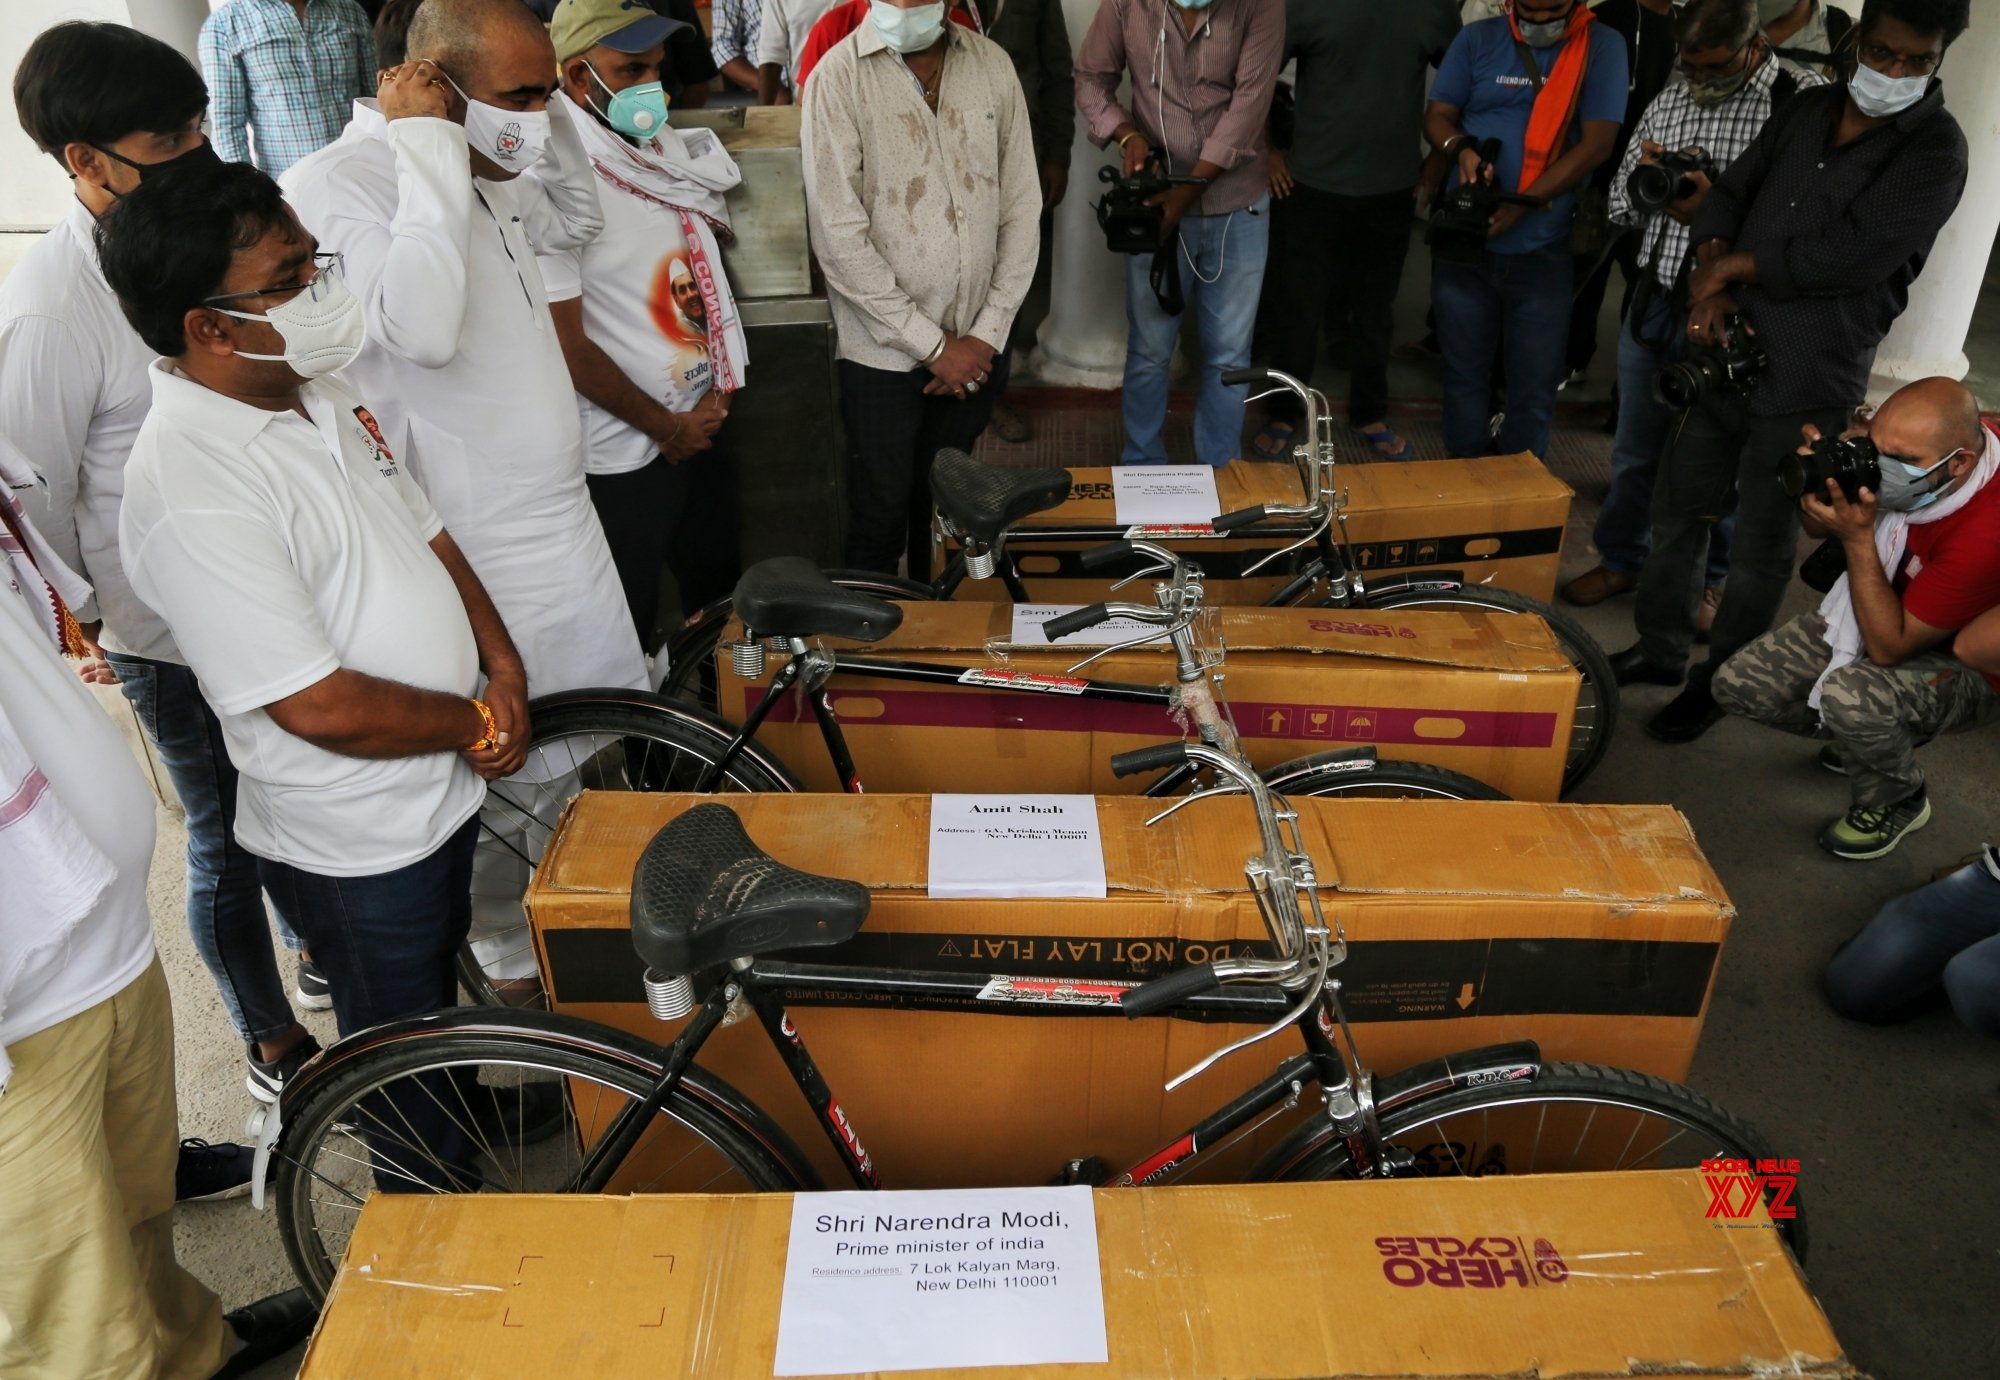 New Delhi : Indian Youth Congress (IYC) sent Bicycle for PM Modi and Cabinate Ministers against price hike on Petrol and Diesel at IYC office in New Delhi. #Gallery